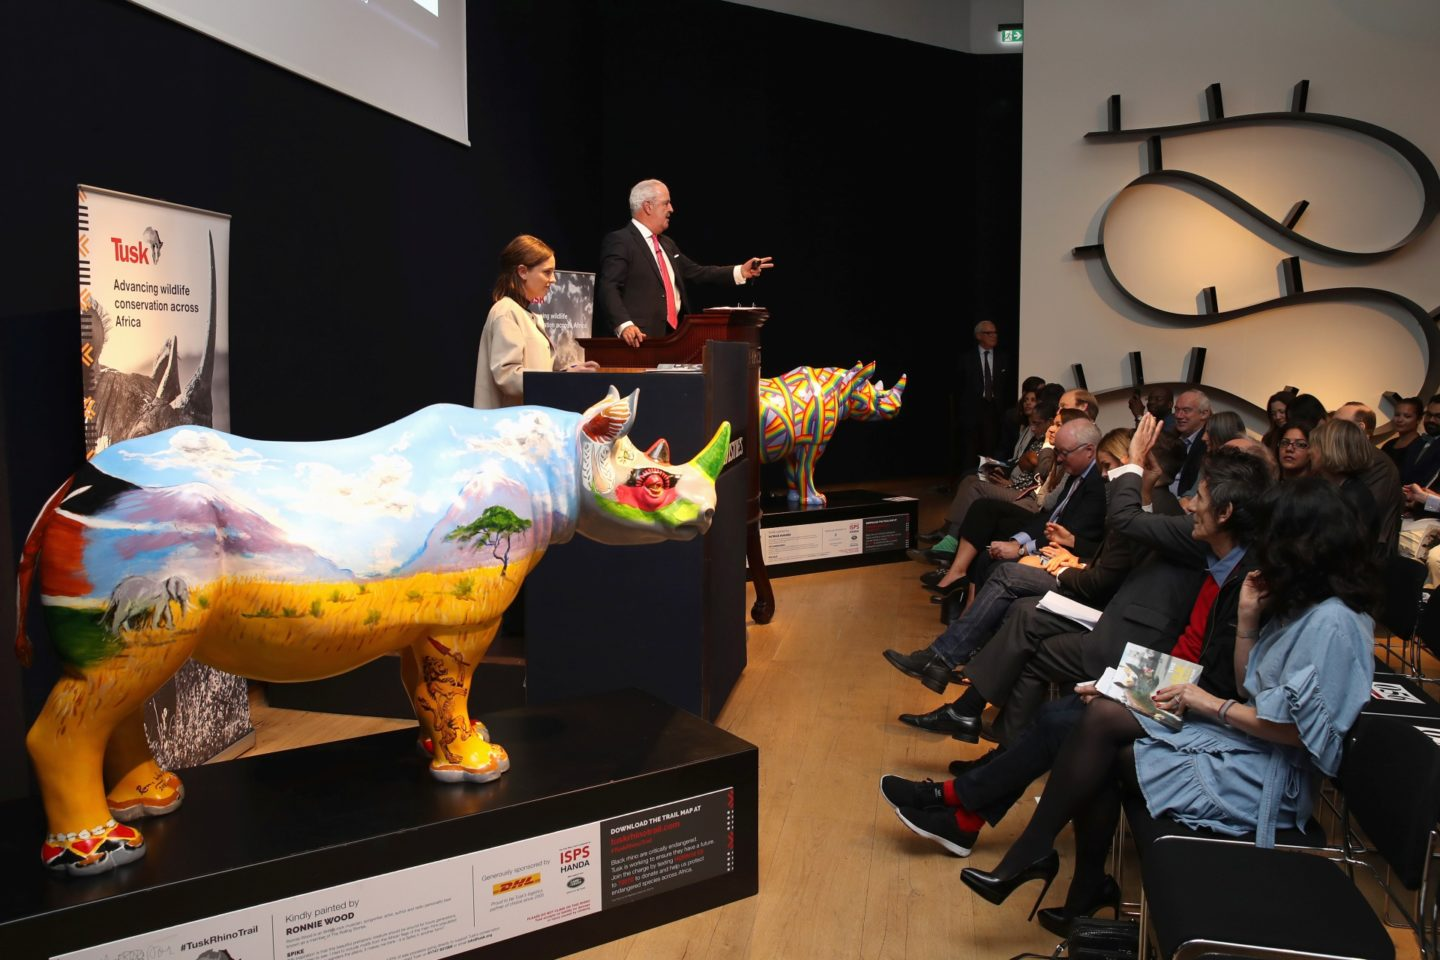 The Tusk Rhino Auction